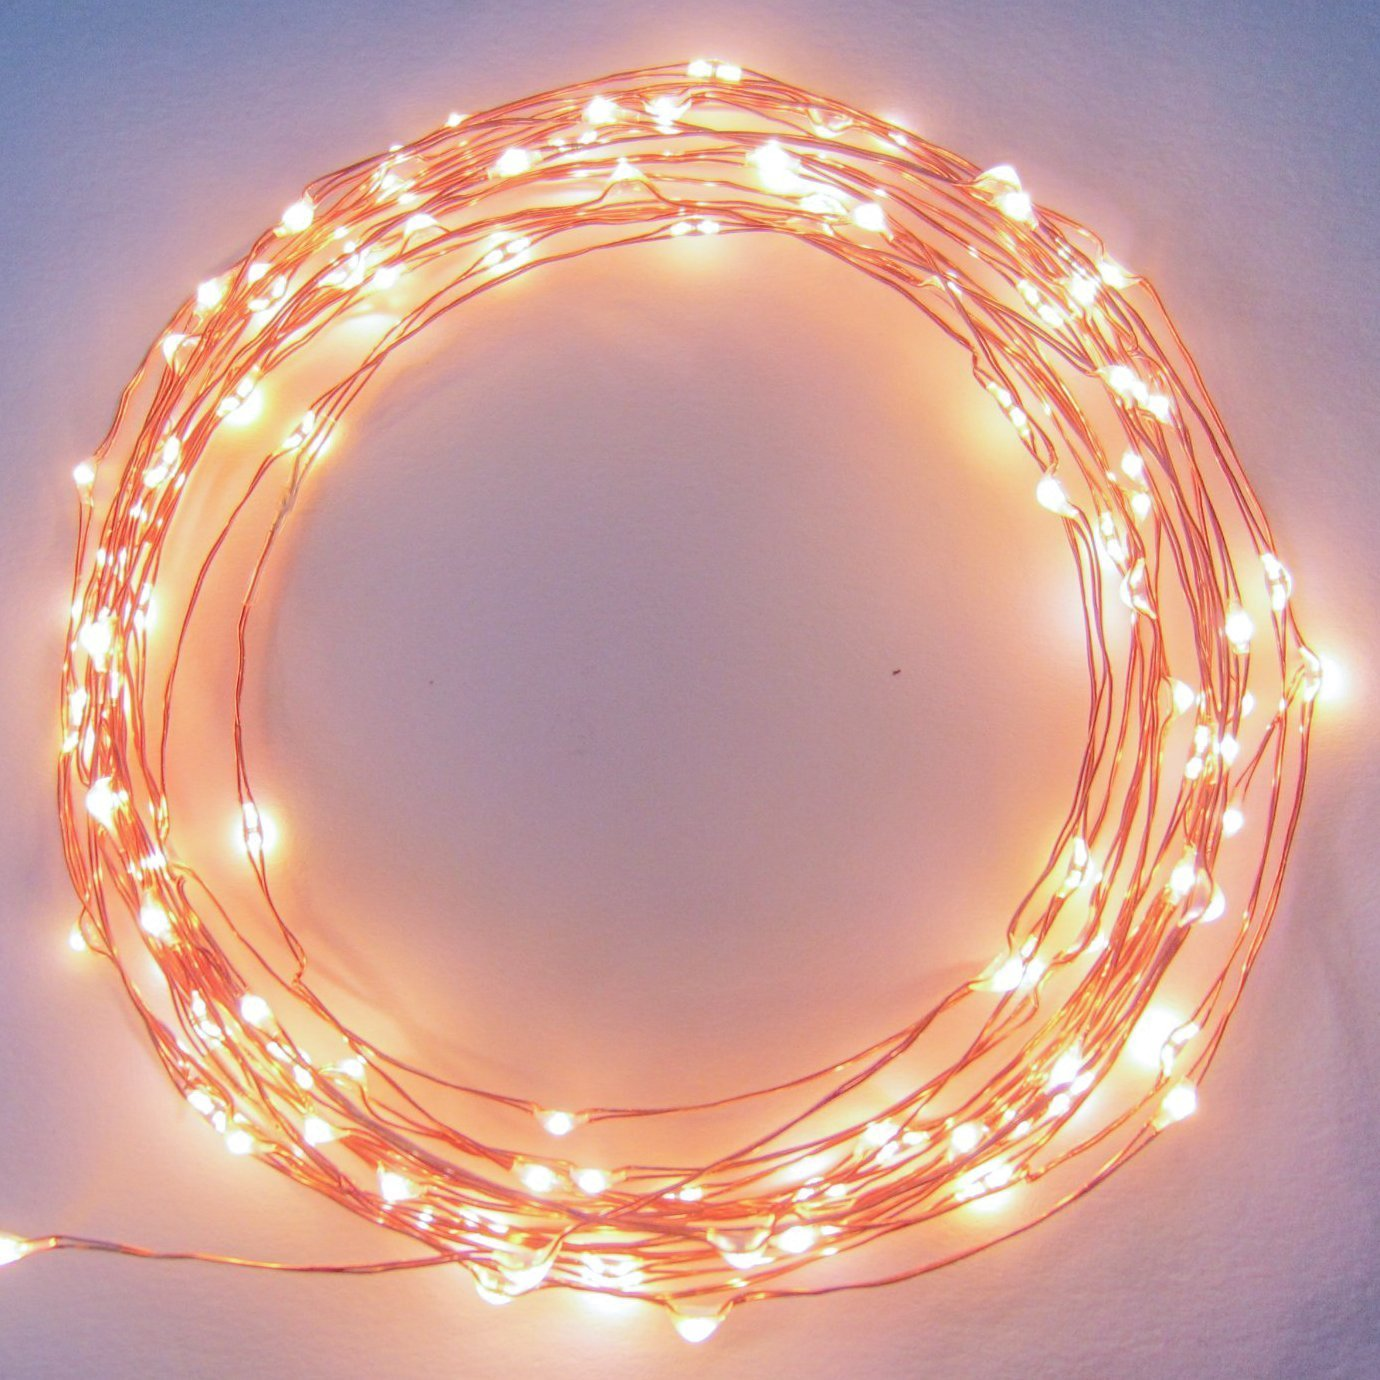 string light in the bedroom – playing creativity with shapes